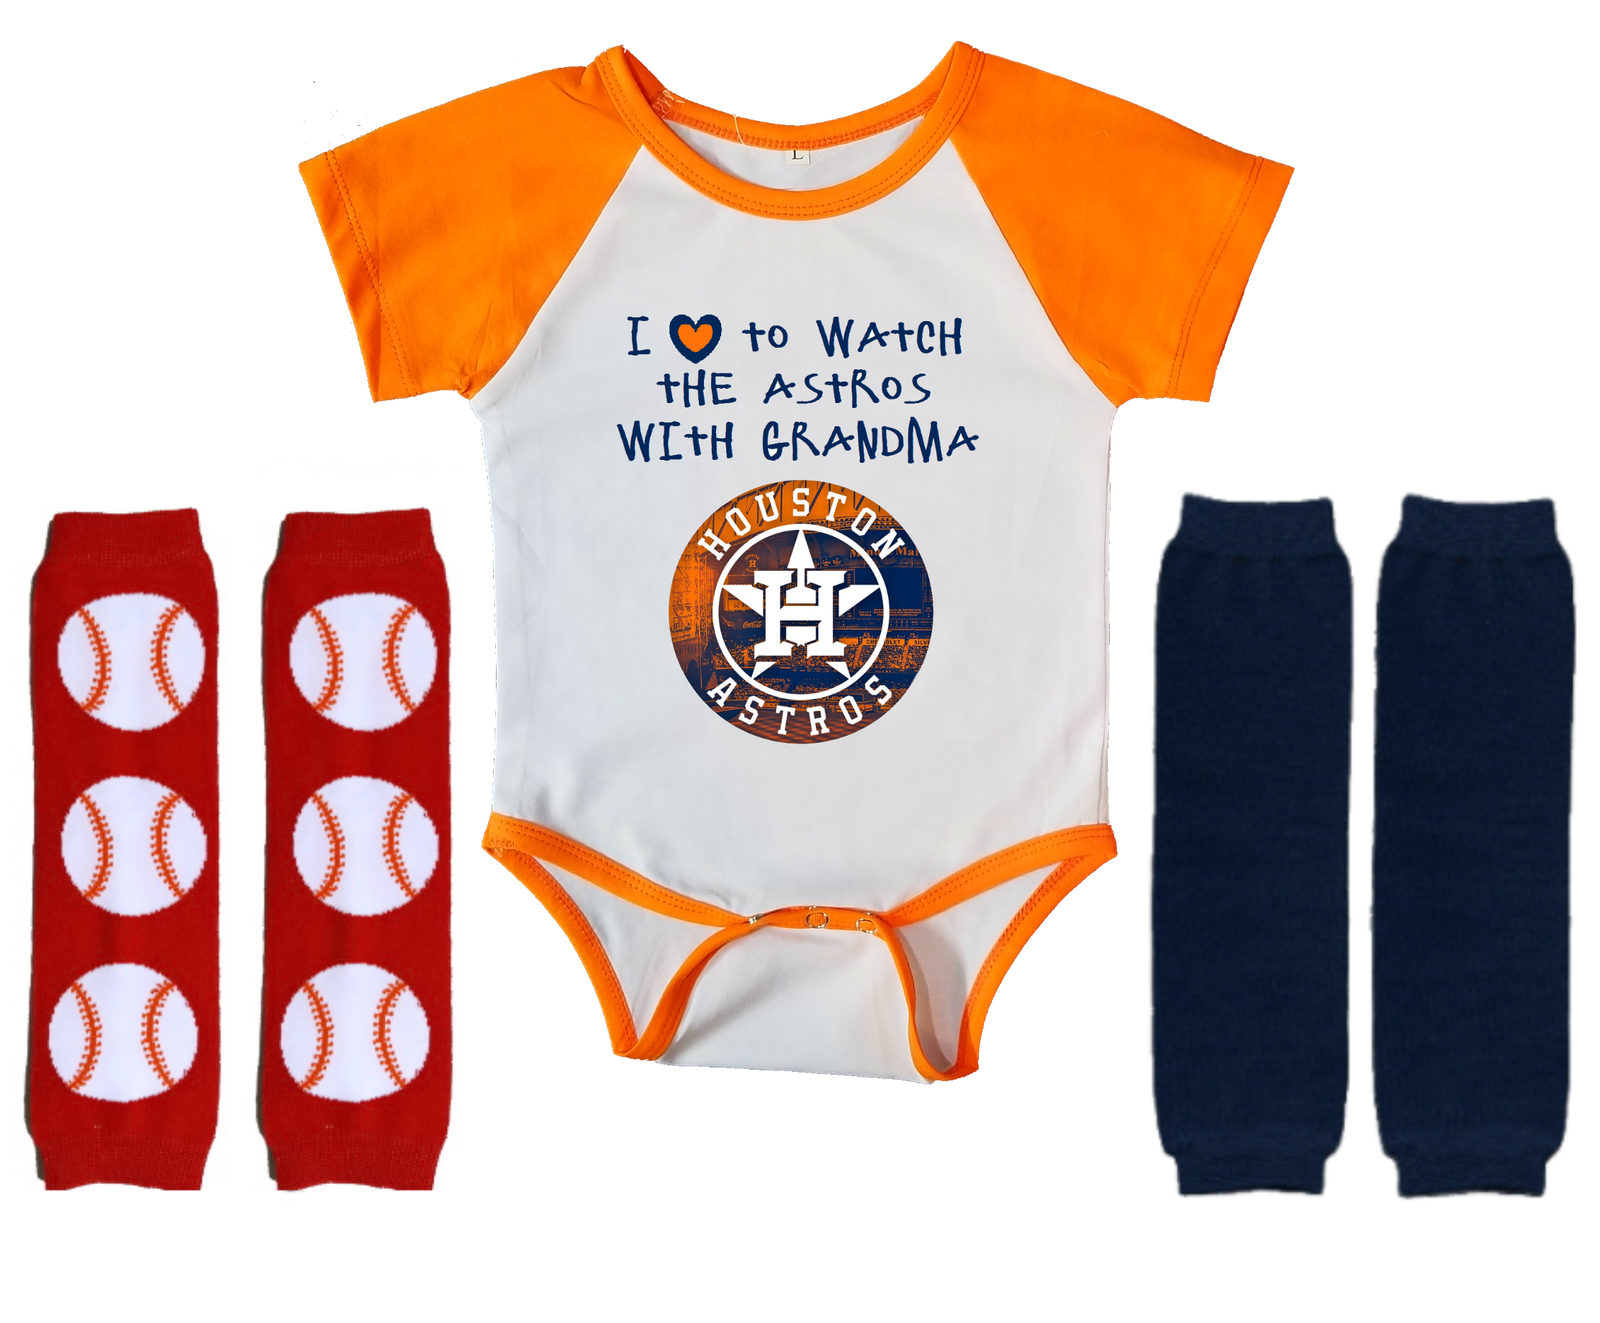 Primary image for Houston Astros Onesie Infant Bodysuit Watch With Grandma